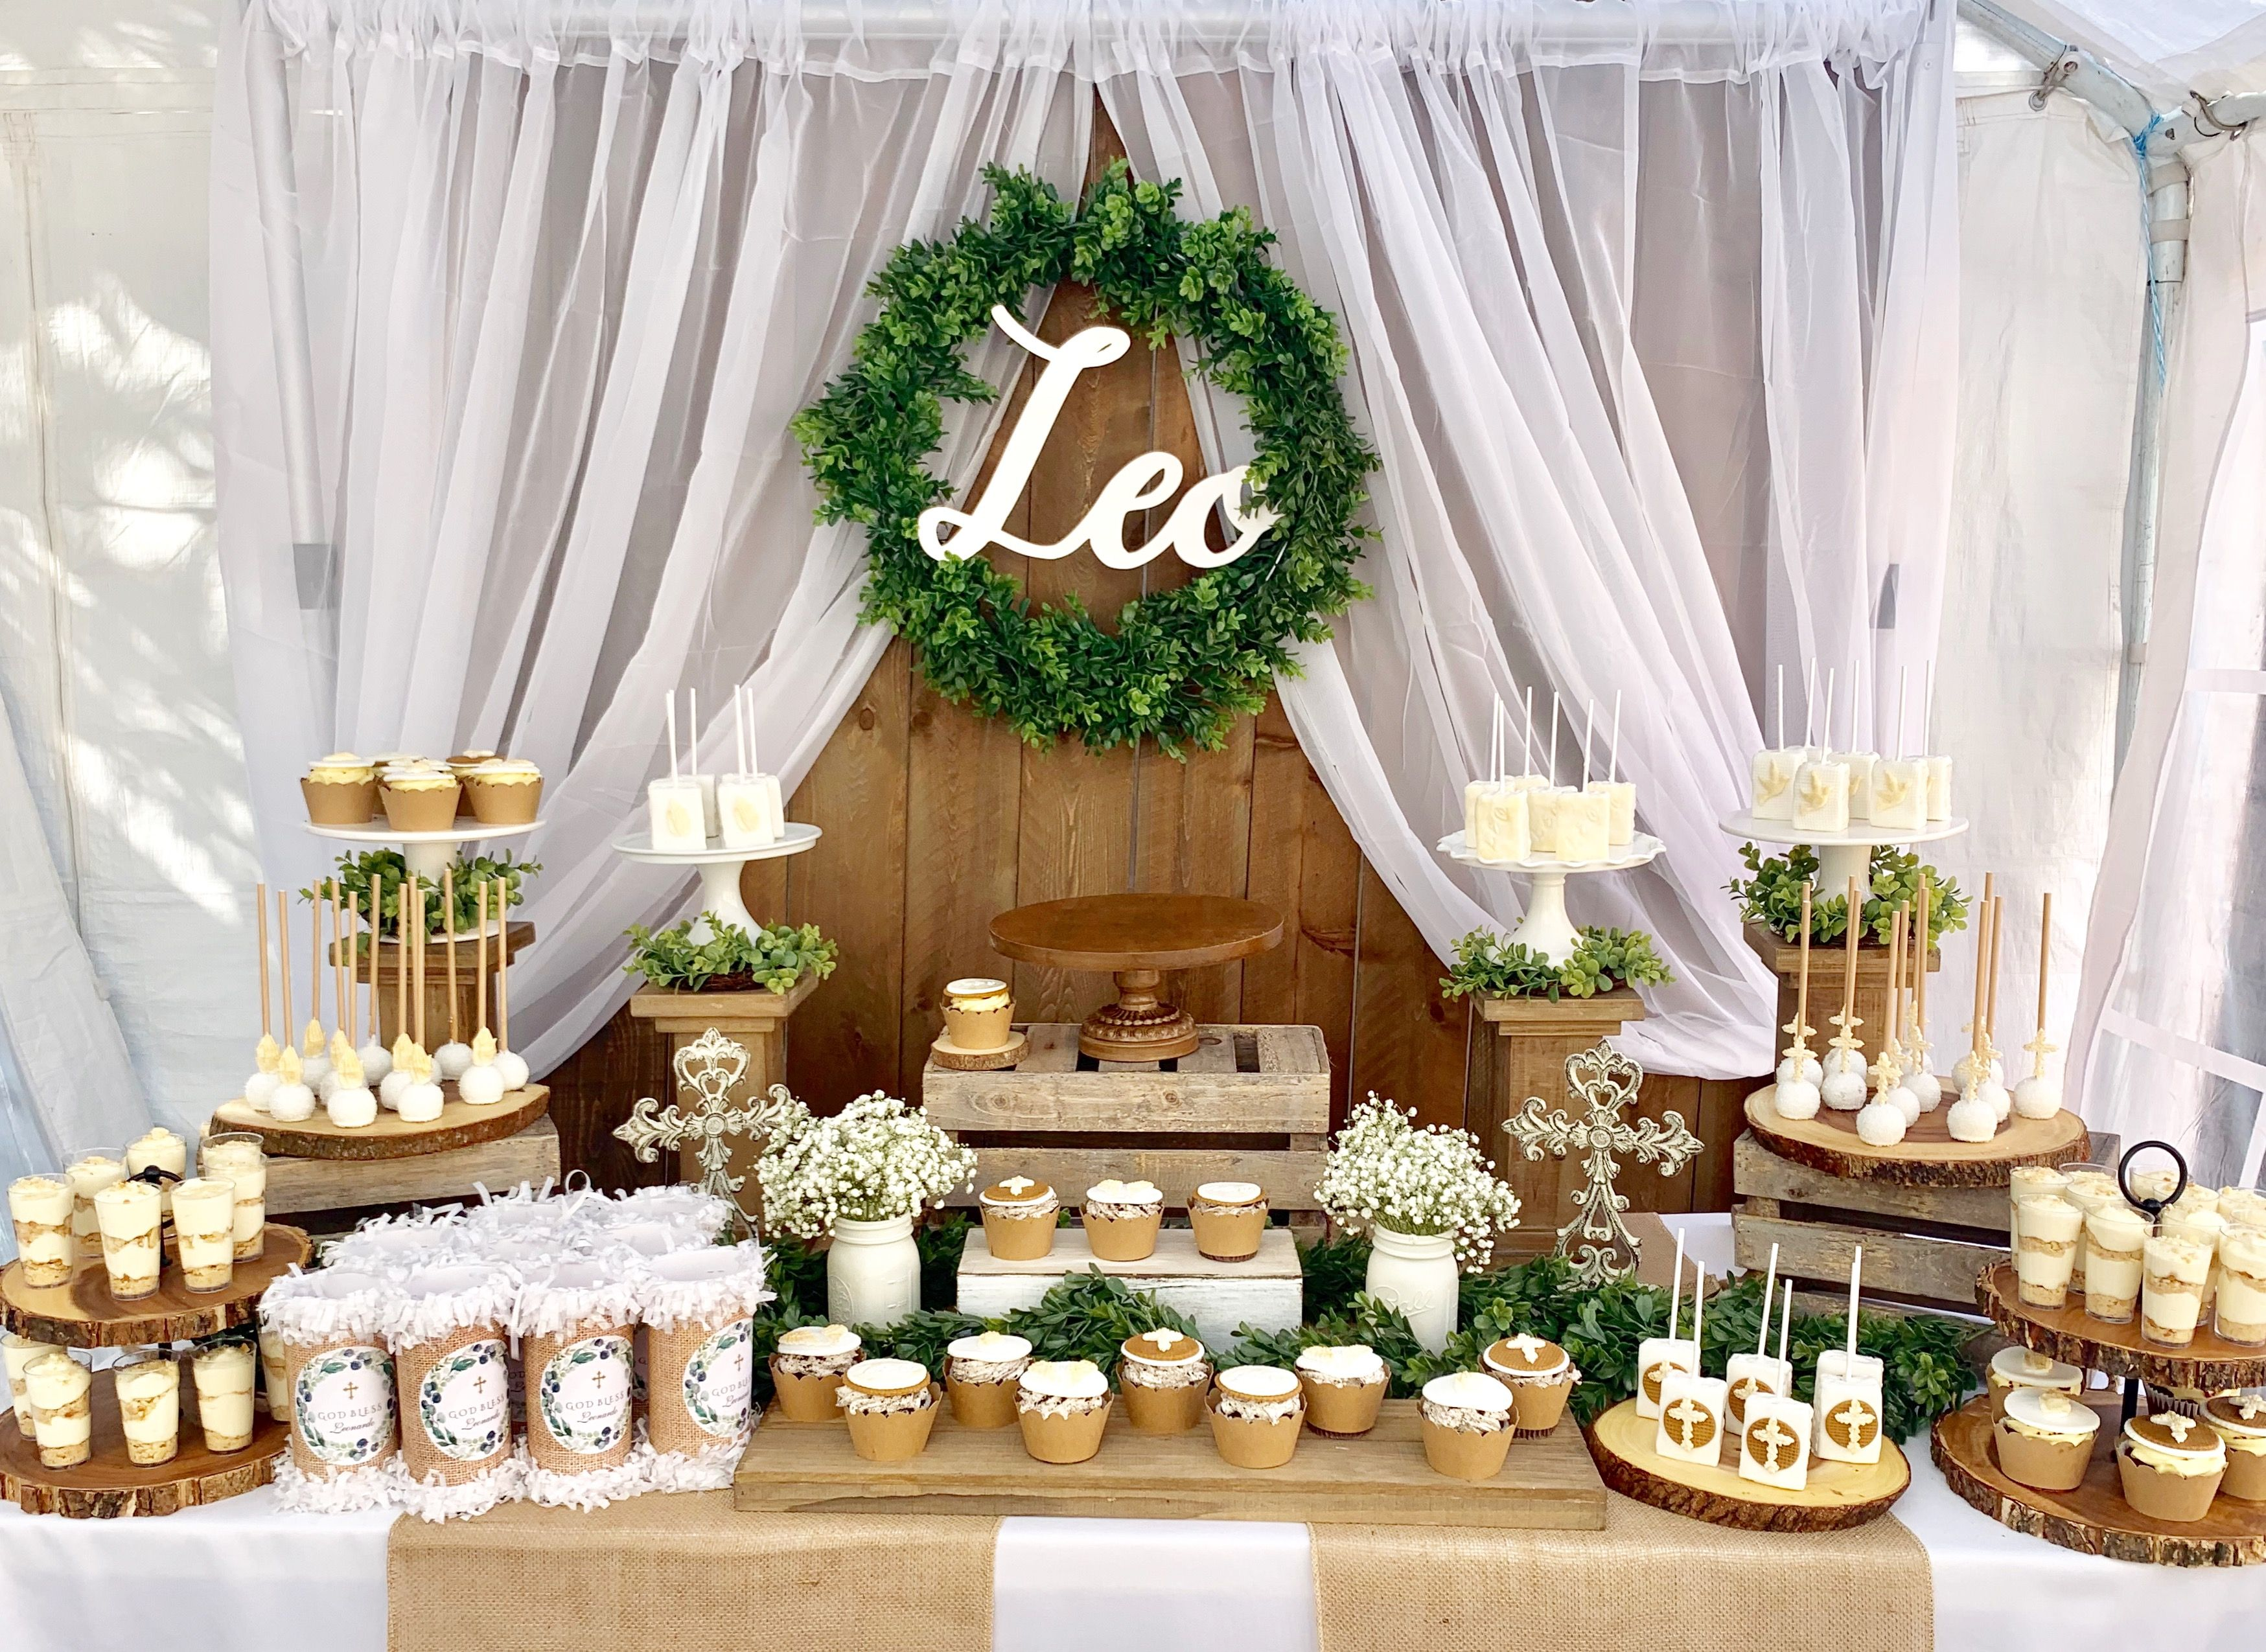 Event Styling Event Stylist Birthday Party Decor Birthday Party Ideas Bay Area Baptism Party Decorations Baby Shower Dessert Table Rustic Birthday Parties